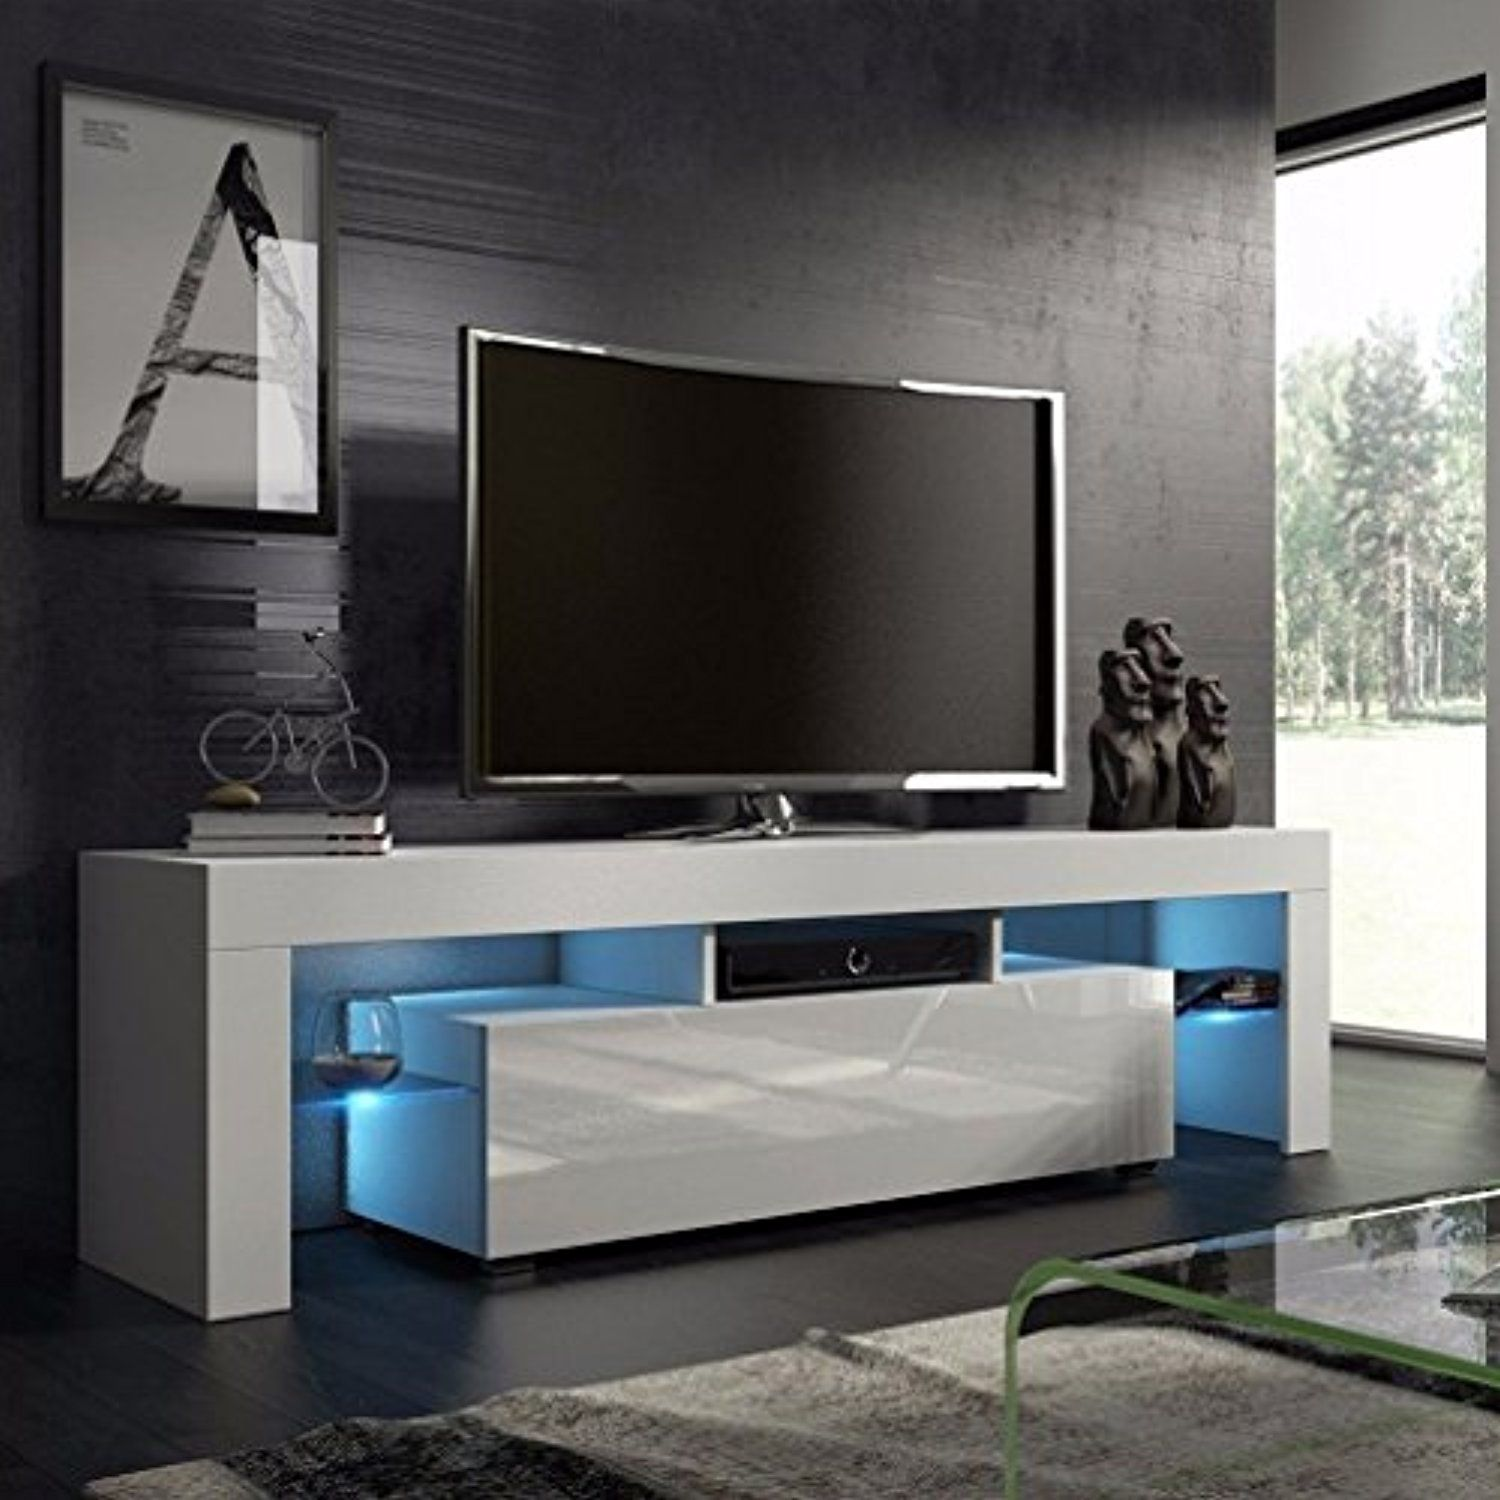 10 Most Popular Tv Settings In Living Room